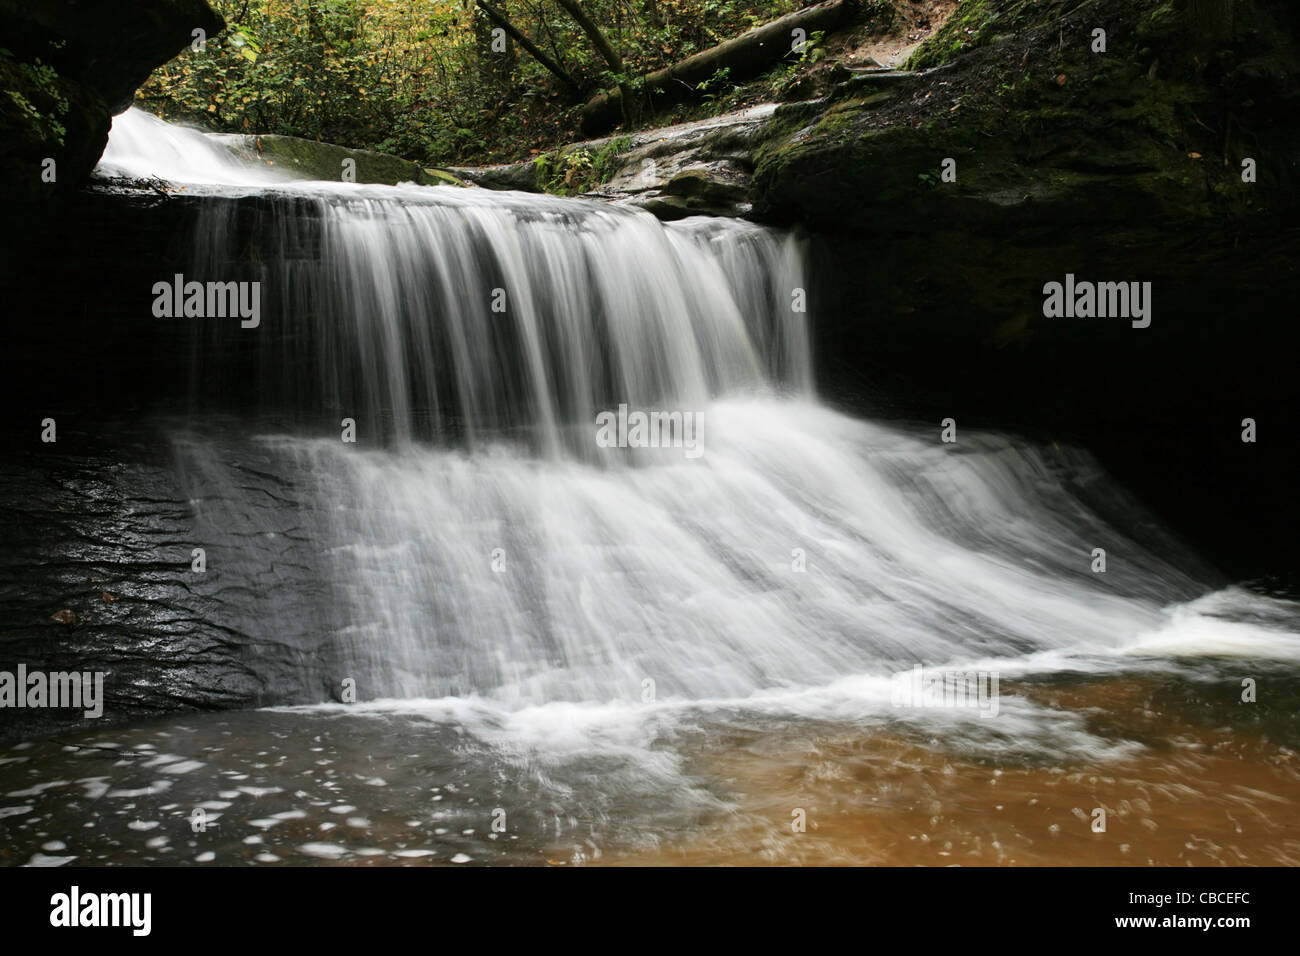 long exposure of Creation Waterfall in the Red River Gorge region of Kentucky - Stock Image